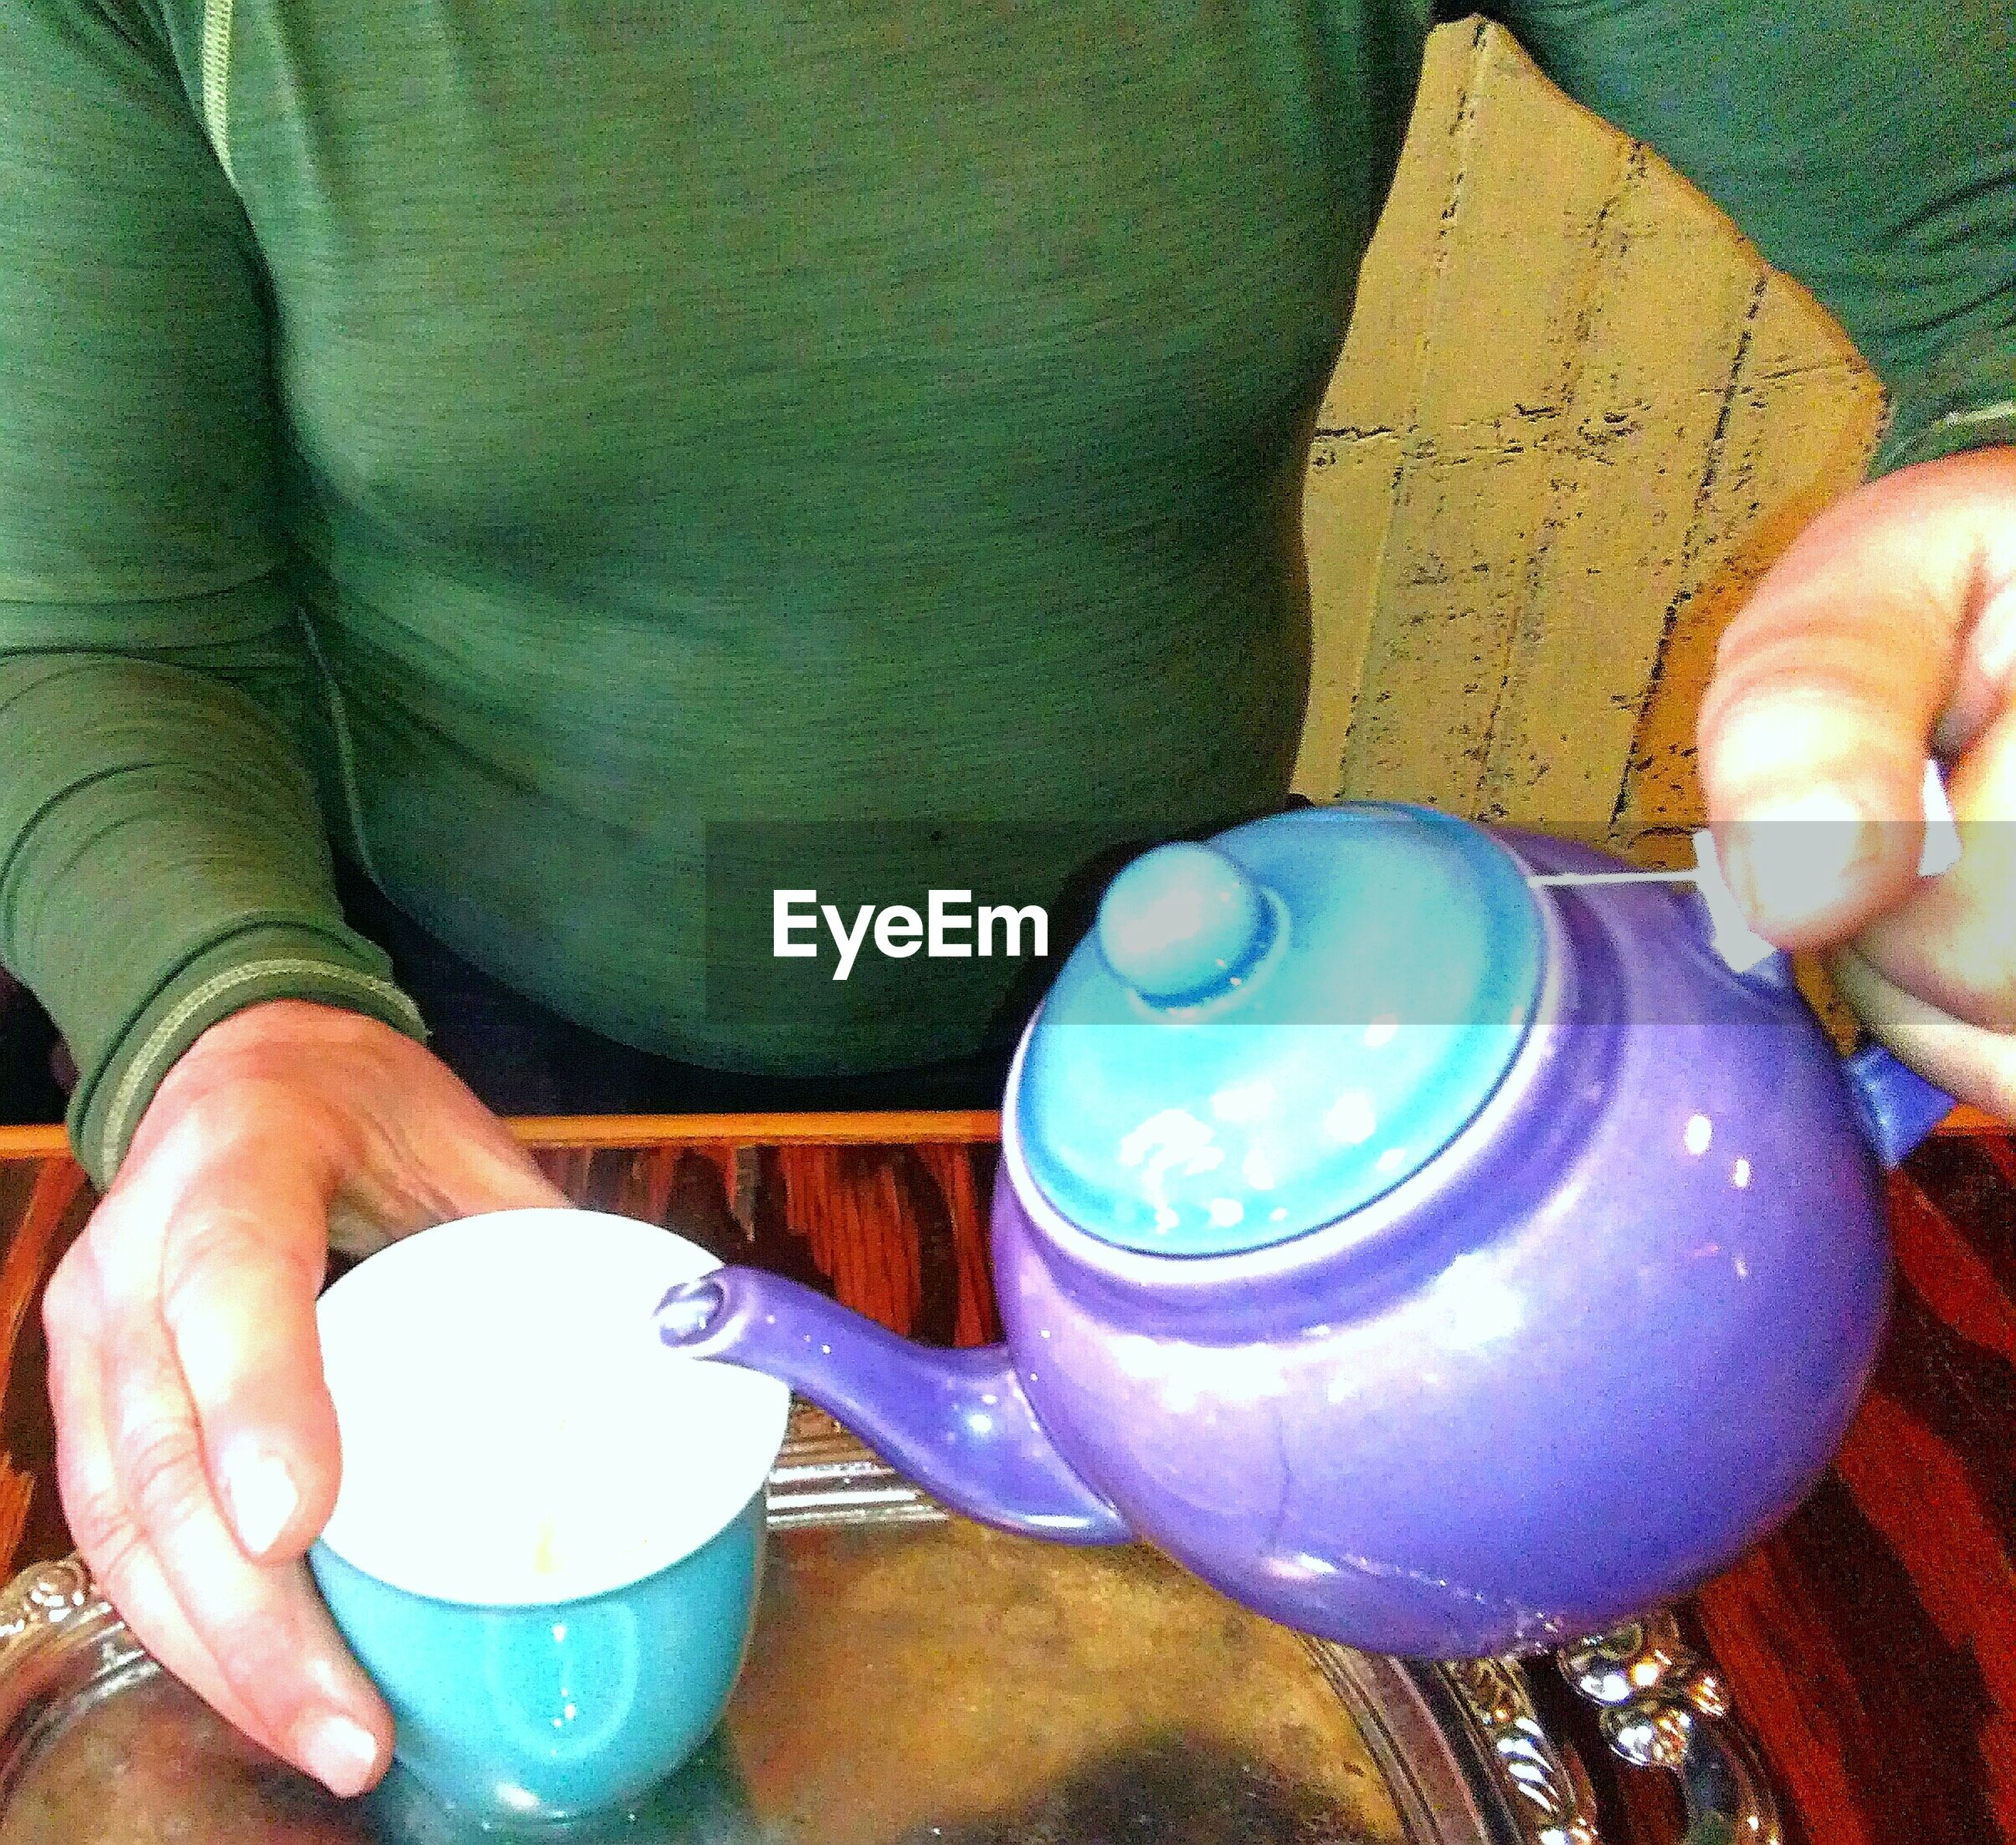 Midsection of person pouring water into cup